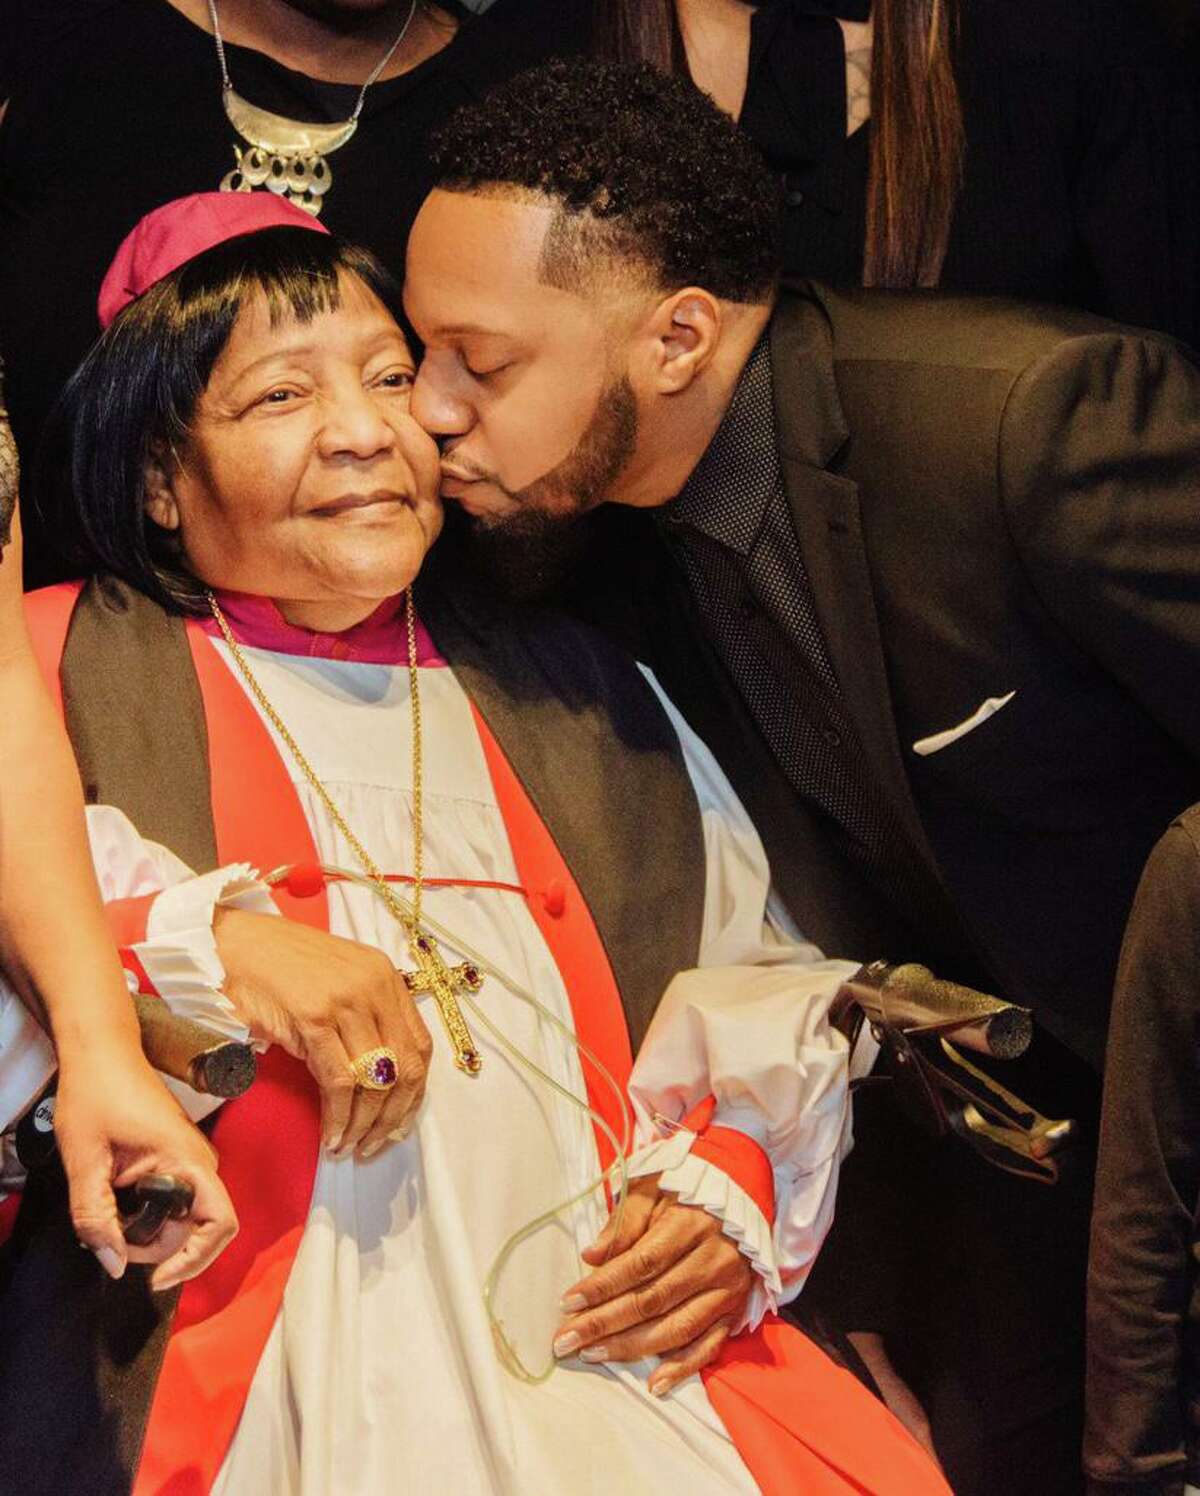 Deon Kipping and his grandmother, Bishop Sarah Kipping, 81, who he said passed away with the new coronavirus. Deon Kipping also battled the illness.